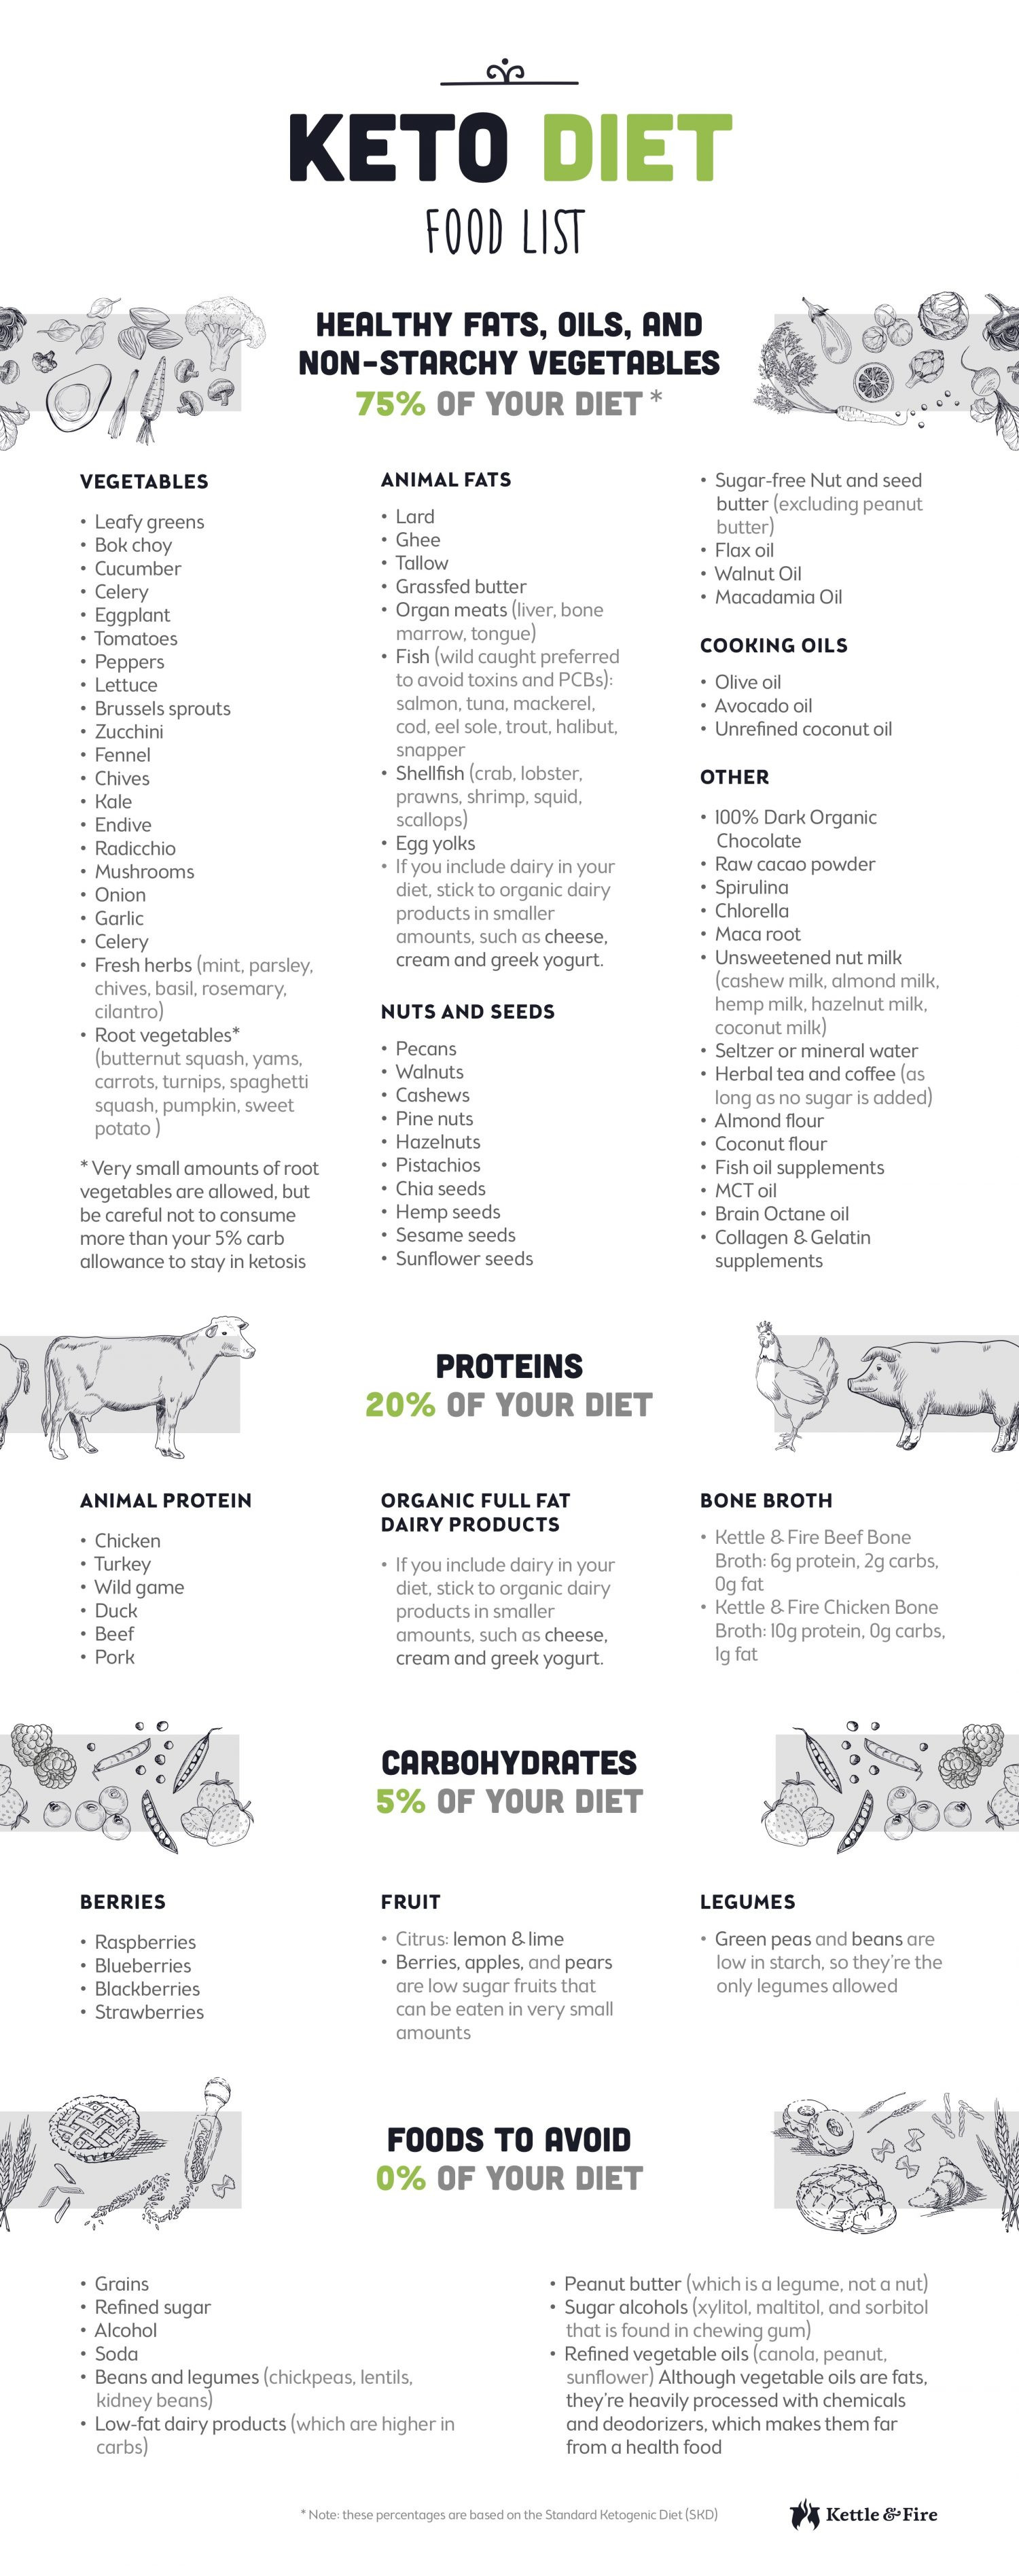 Keto Diet Products  Keto Diet Food List for Ultimate Fat Burning Perfect